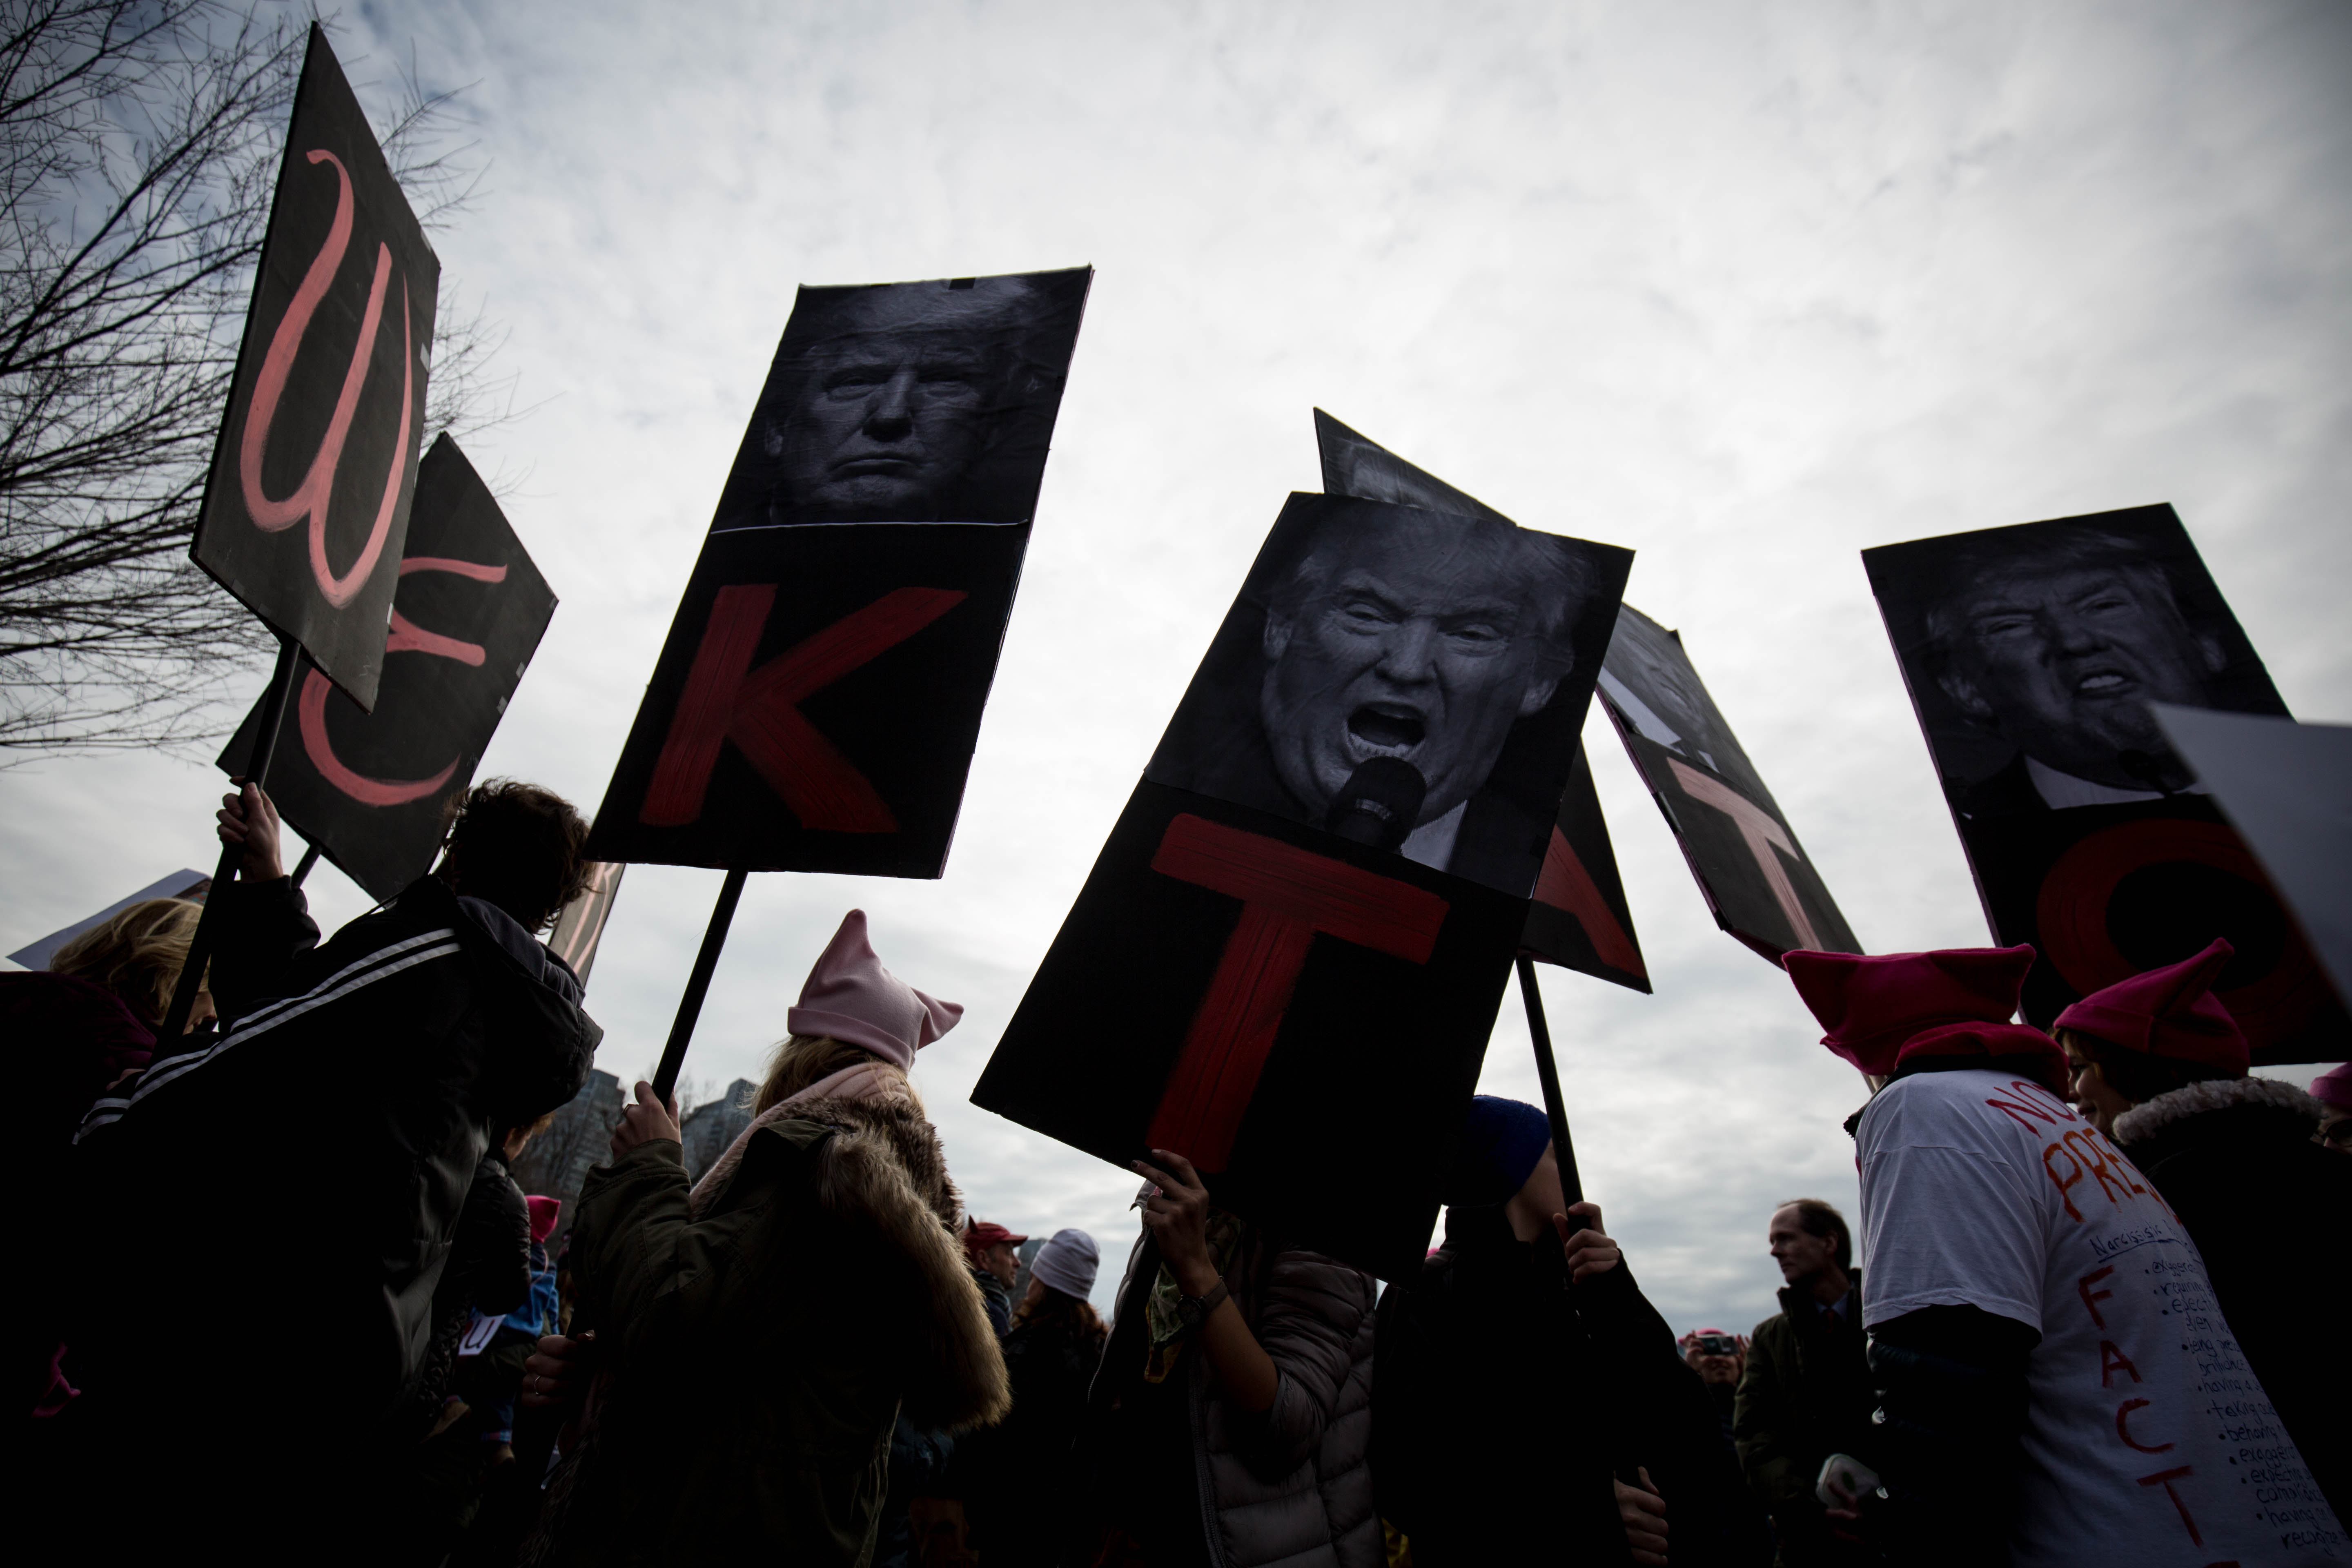 """Protestors hold up collective signs calling President Donald J. Trump a """"dicktator"""" in the Boston Commons on Jan. 21, 2017. (Photo by Alastair Pike)"""